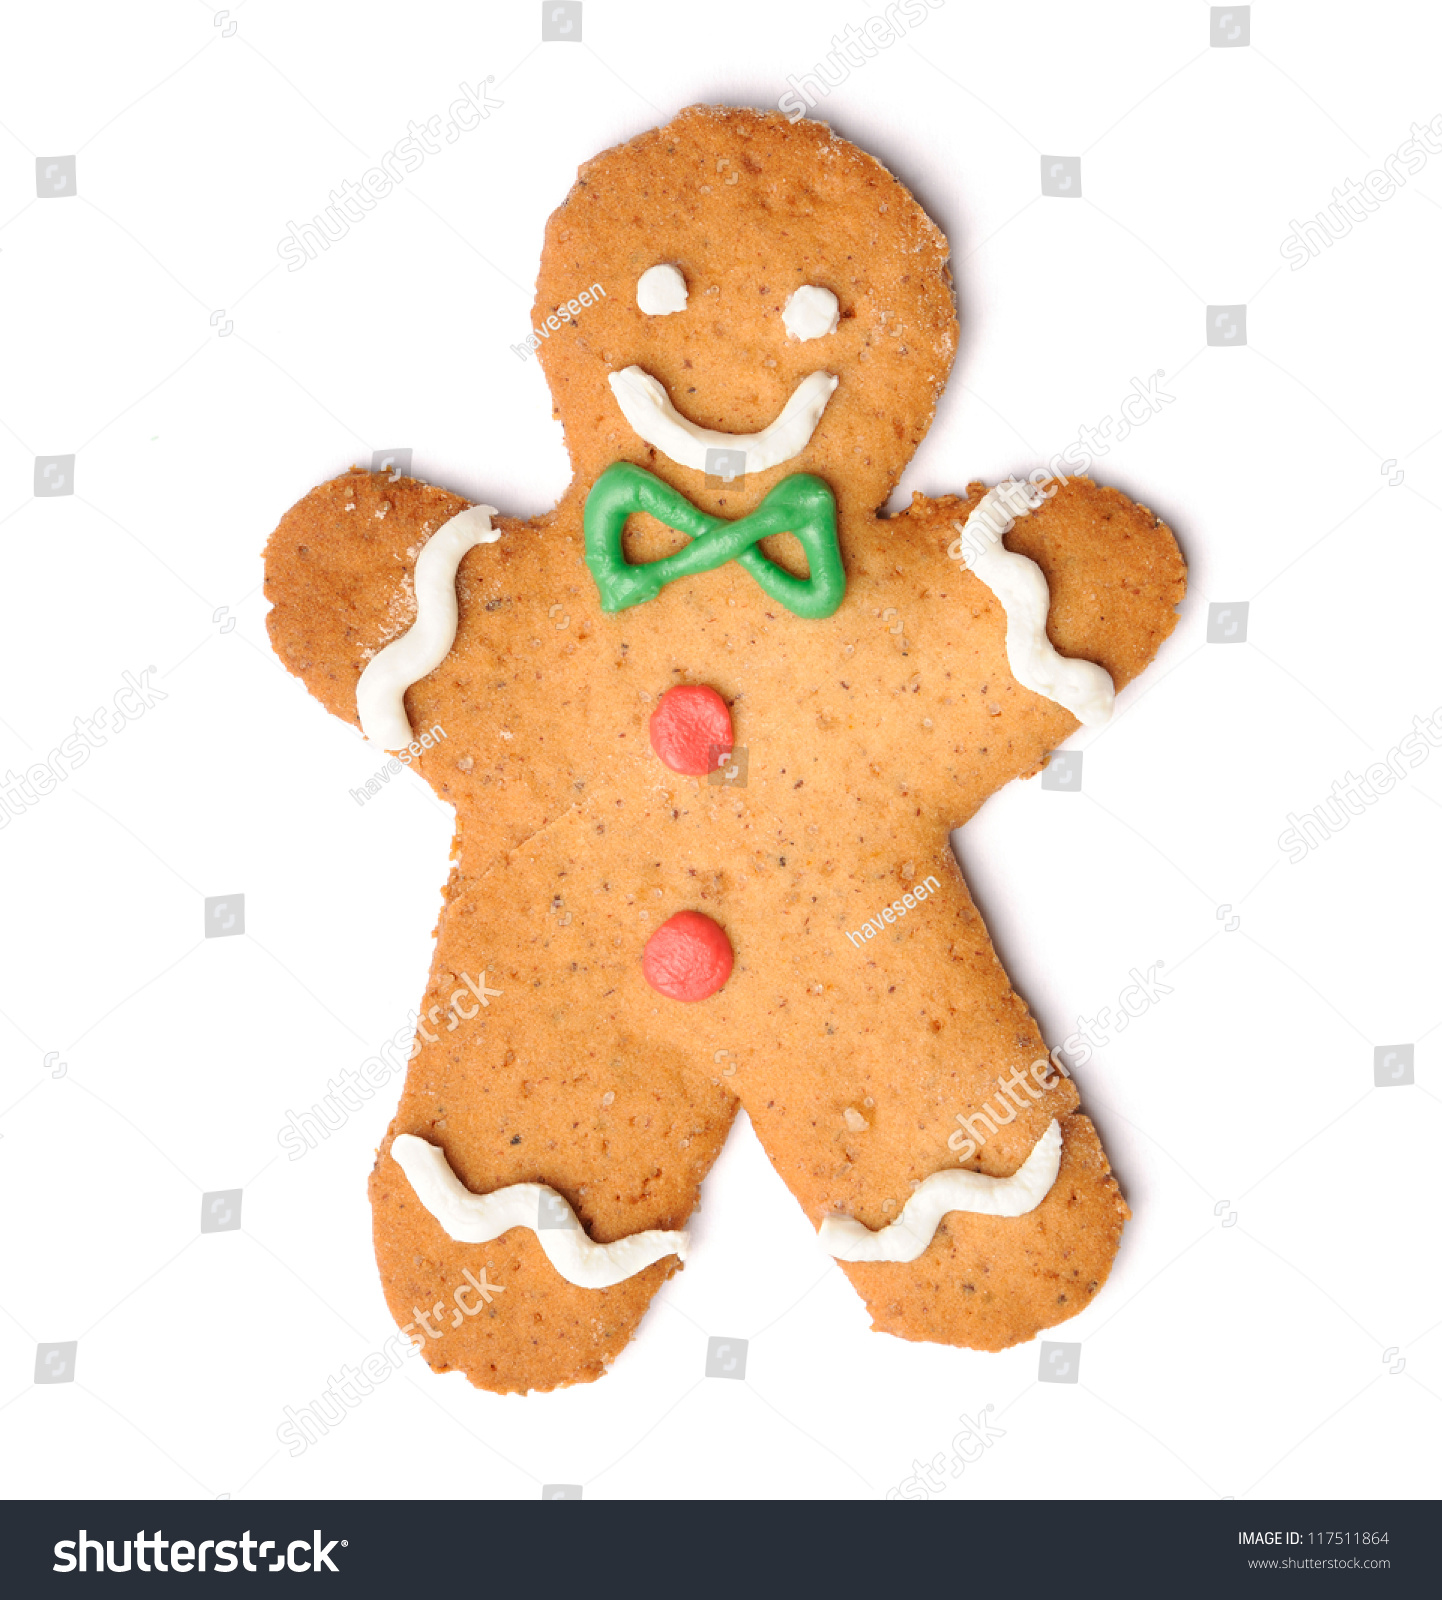 id 117511864 - Christmas Gingerbread Man